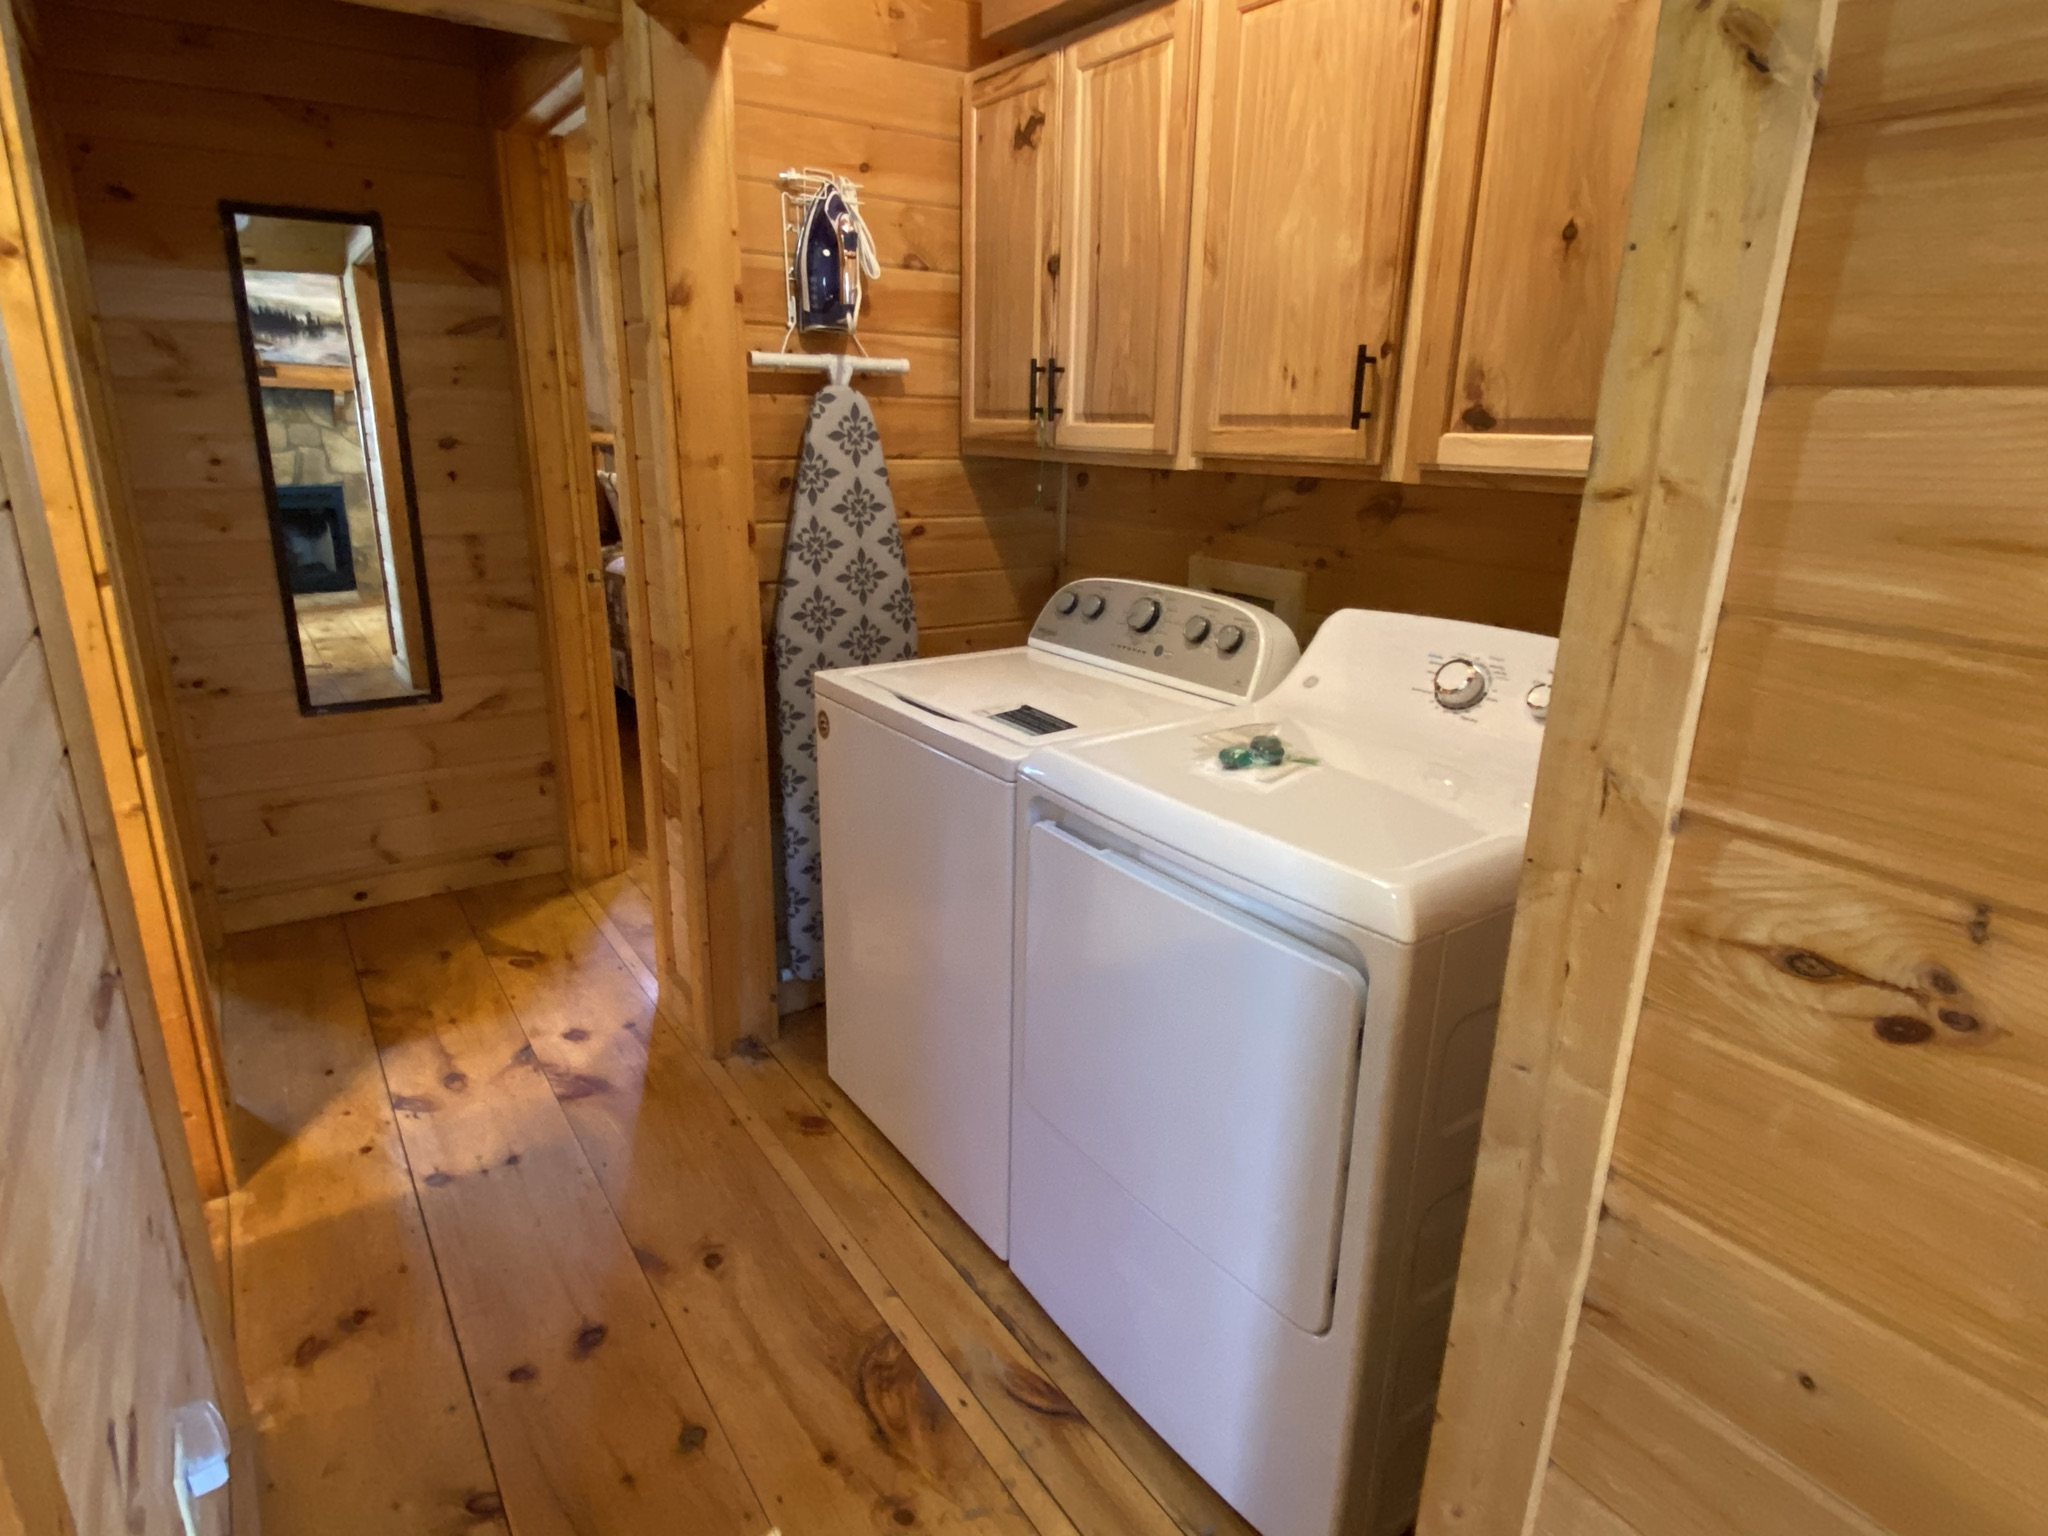 Full-size washer and dryer and iron and ironing board